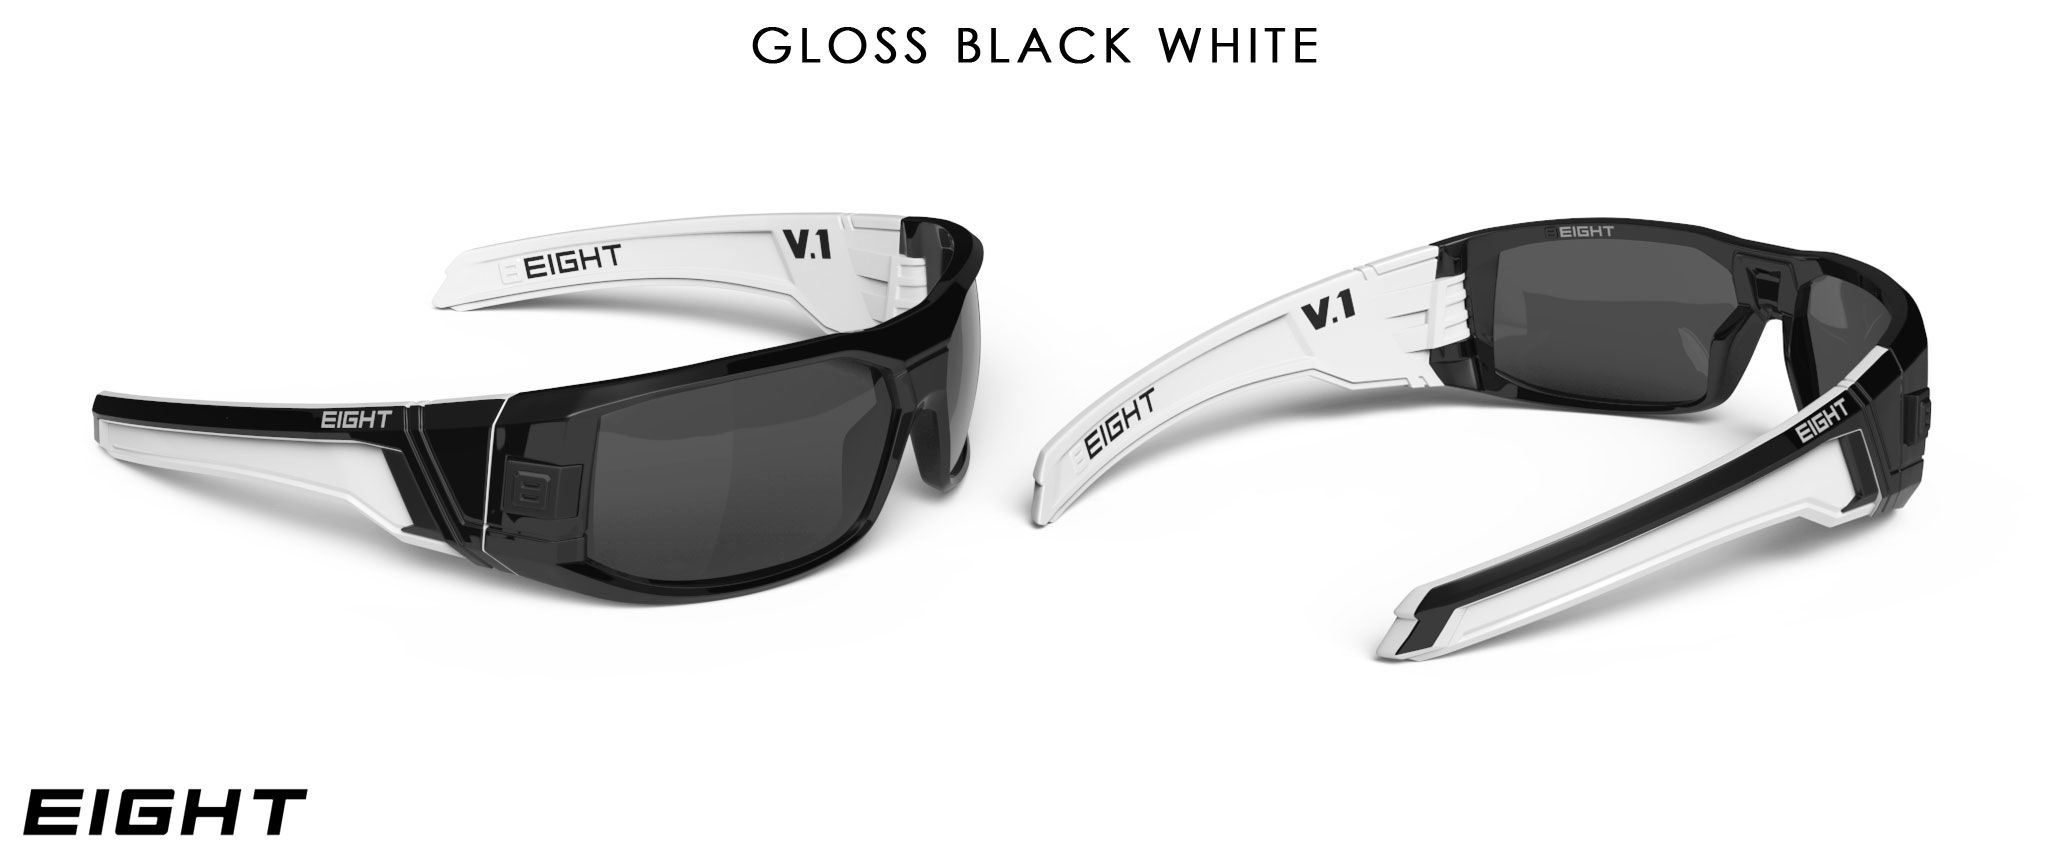 939fabd0ae Gloss Black   White V.1 sunglasses from EIGHT White Sunglasses